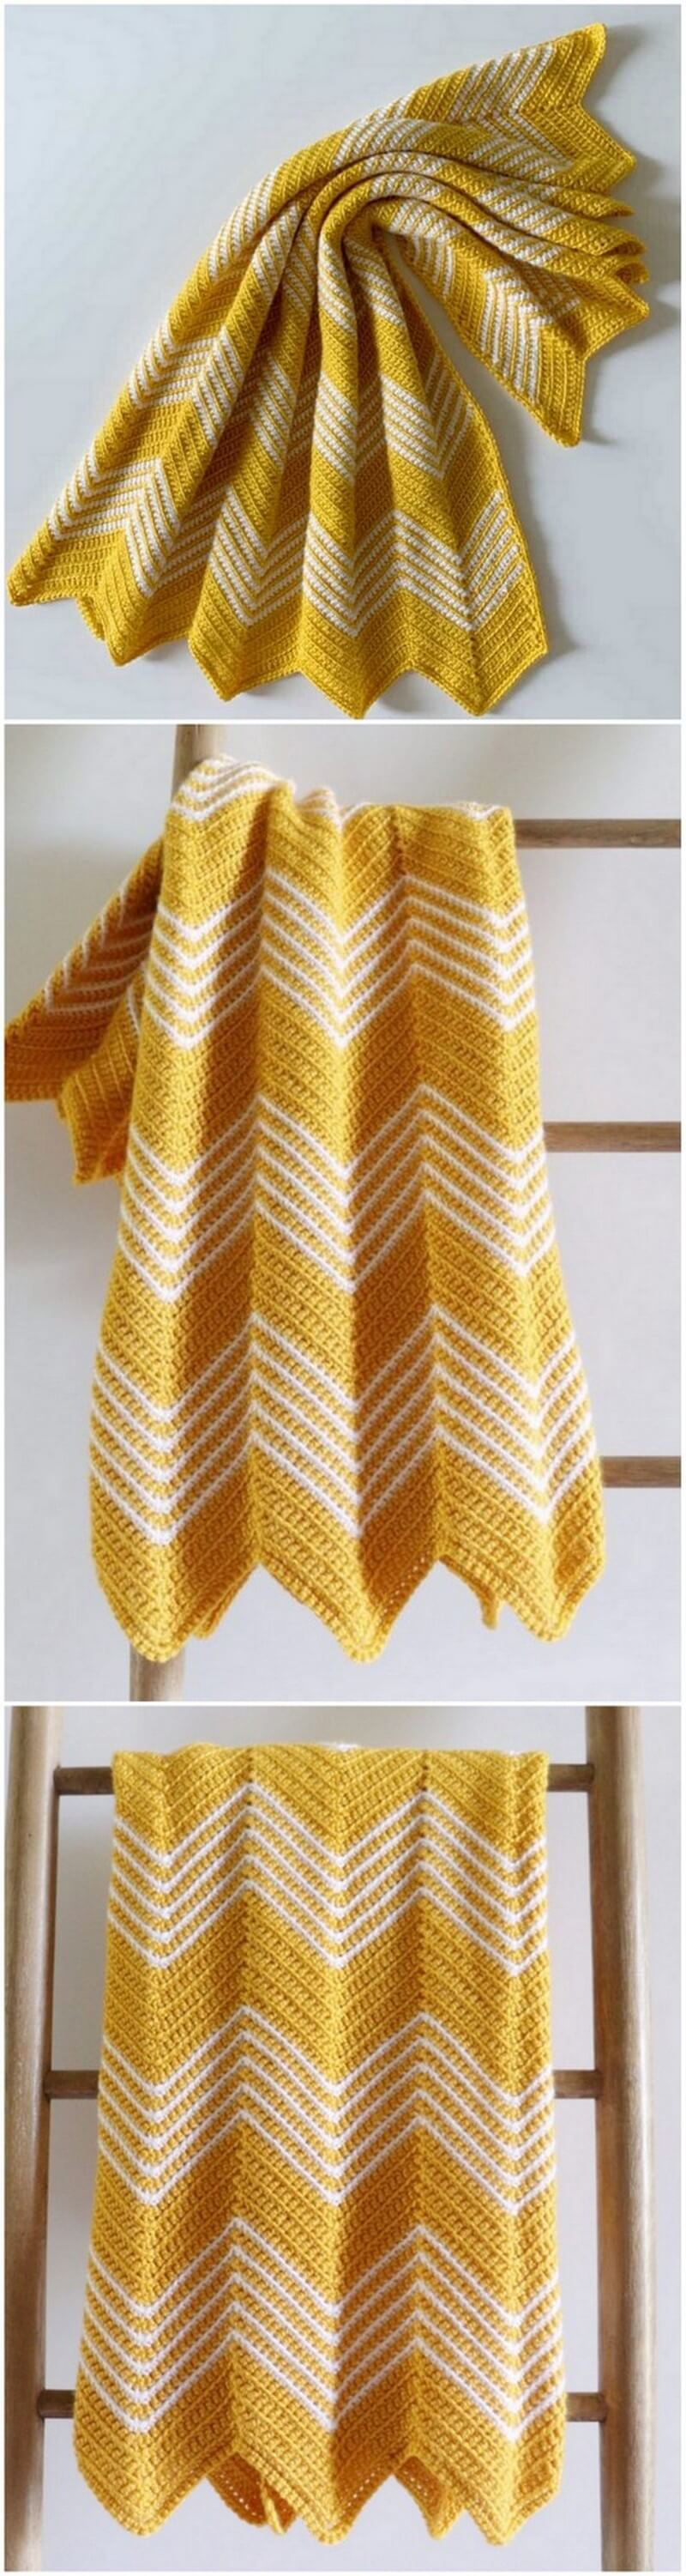 Easy Crochet Blanket Pattern (24)